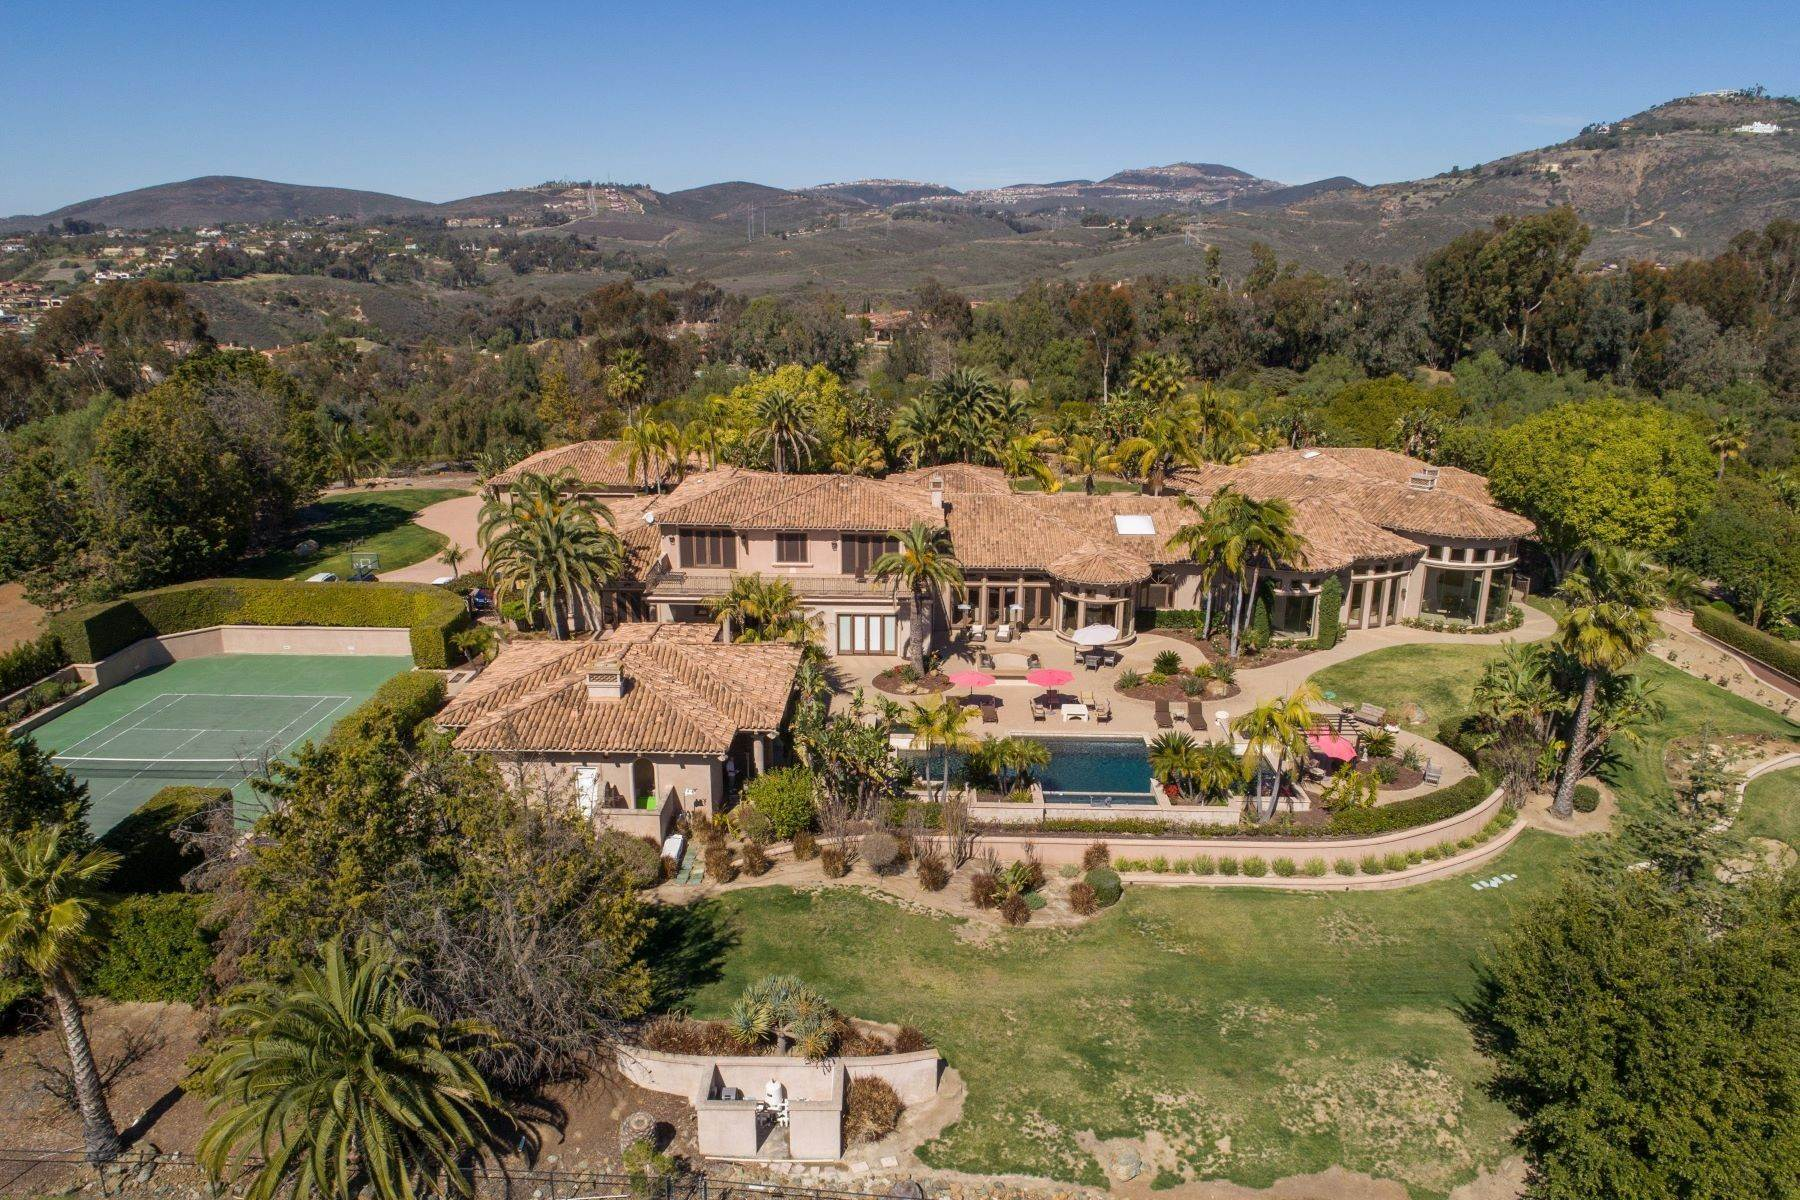 Single Family Homes for Active at 6682 Las Arboledas, Rancho Santa Fe, CA 92067 6682 Las Arboledas Rancho Santa Fe, California 92067 United States